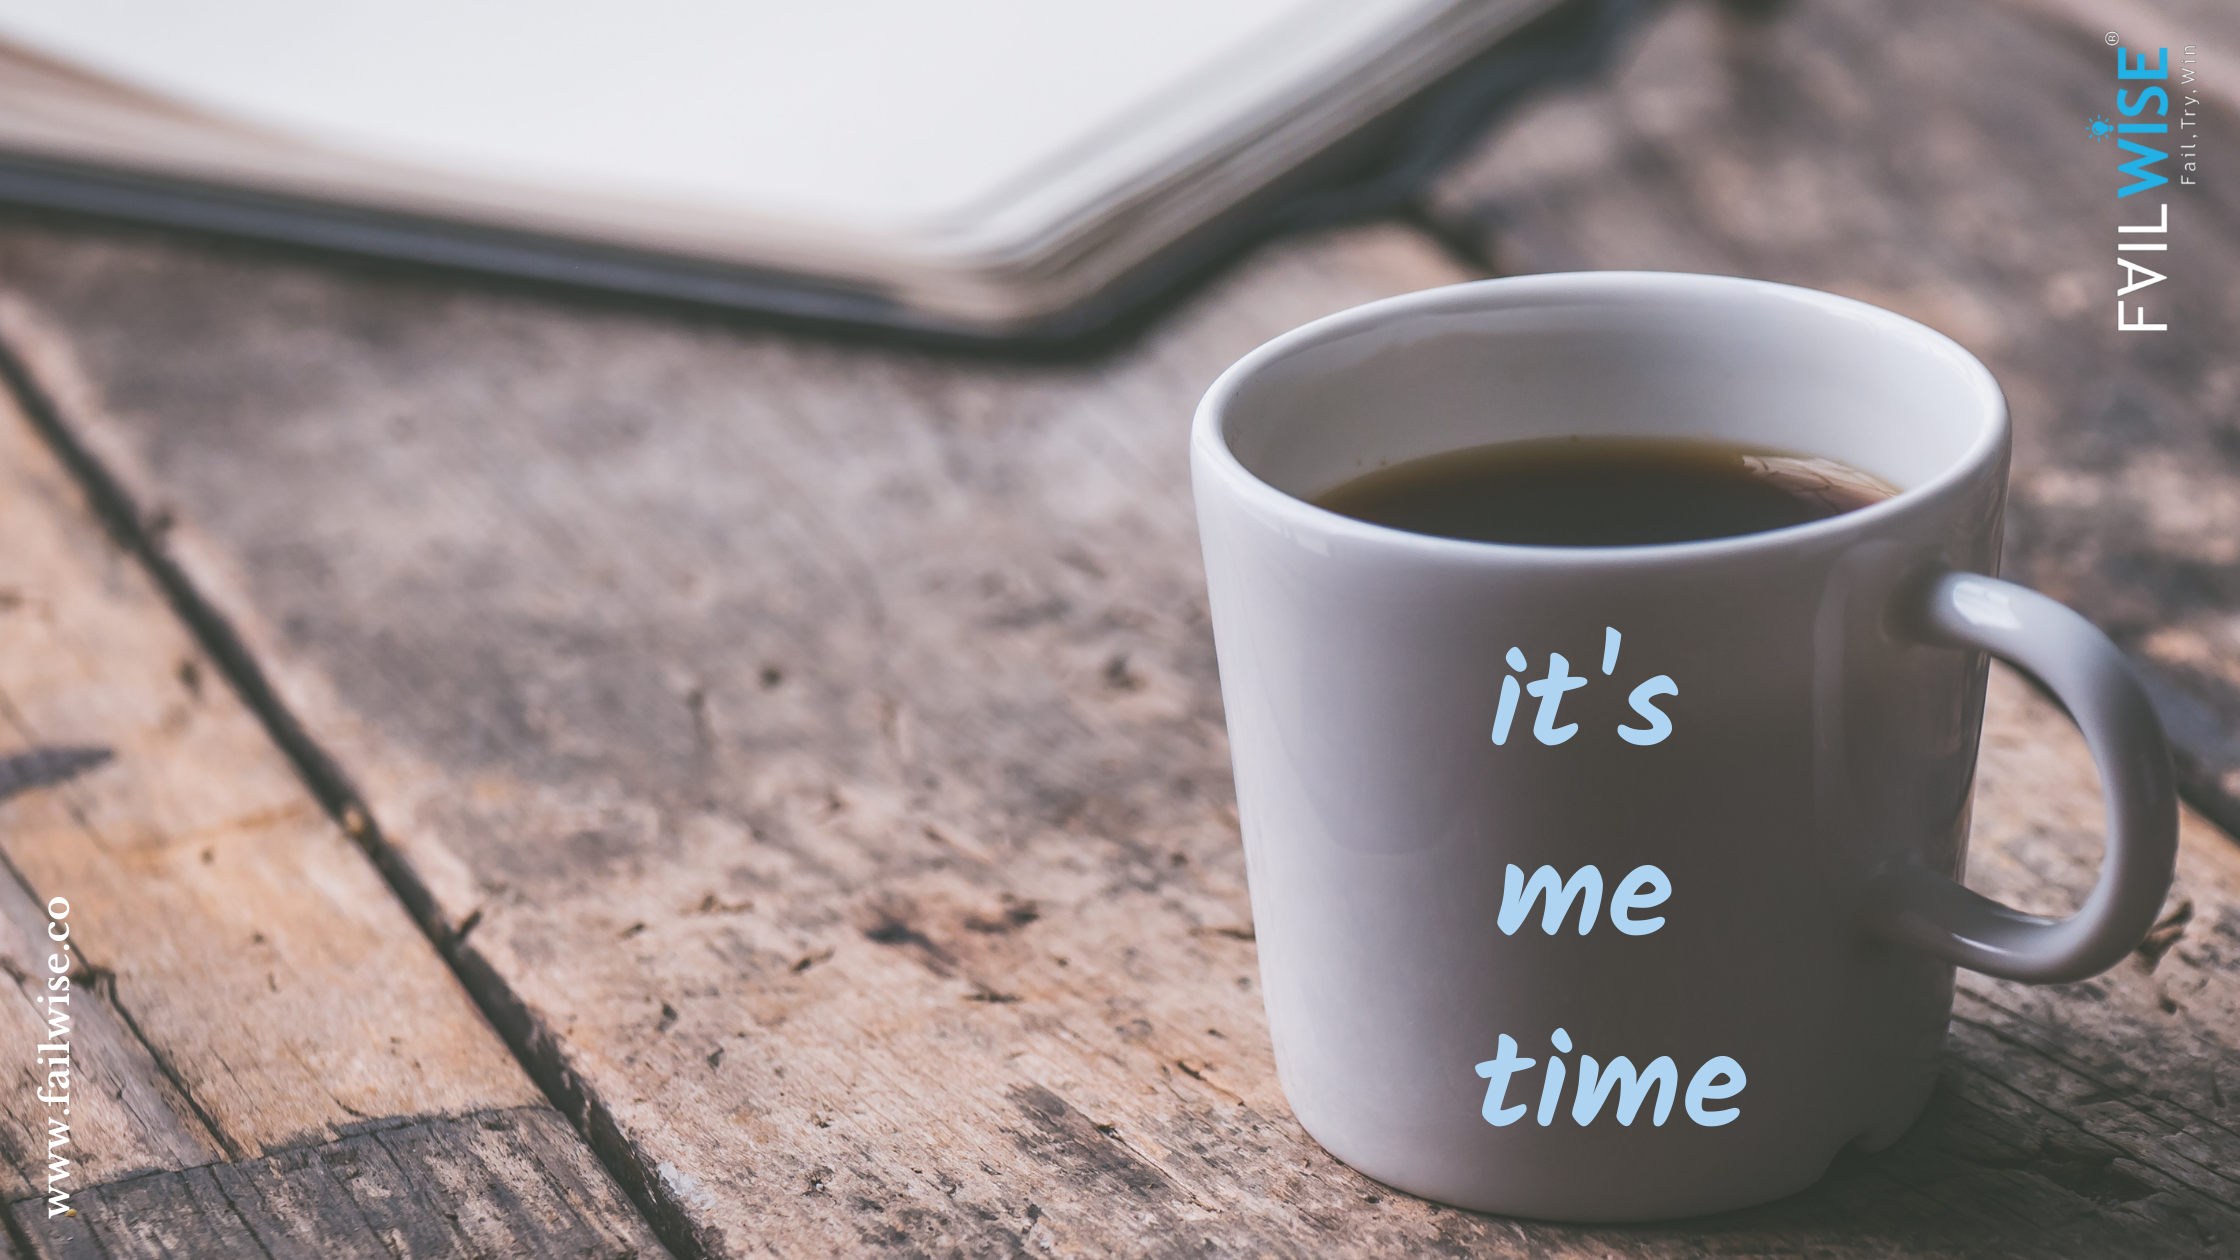 My Life is Very Busy - I Need Some 'Me' Time